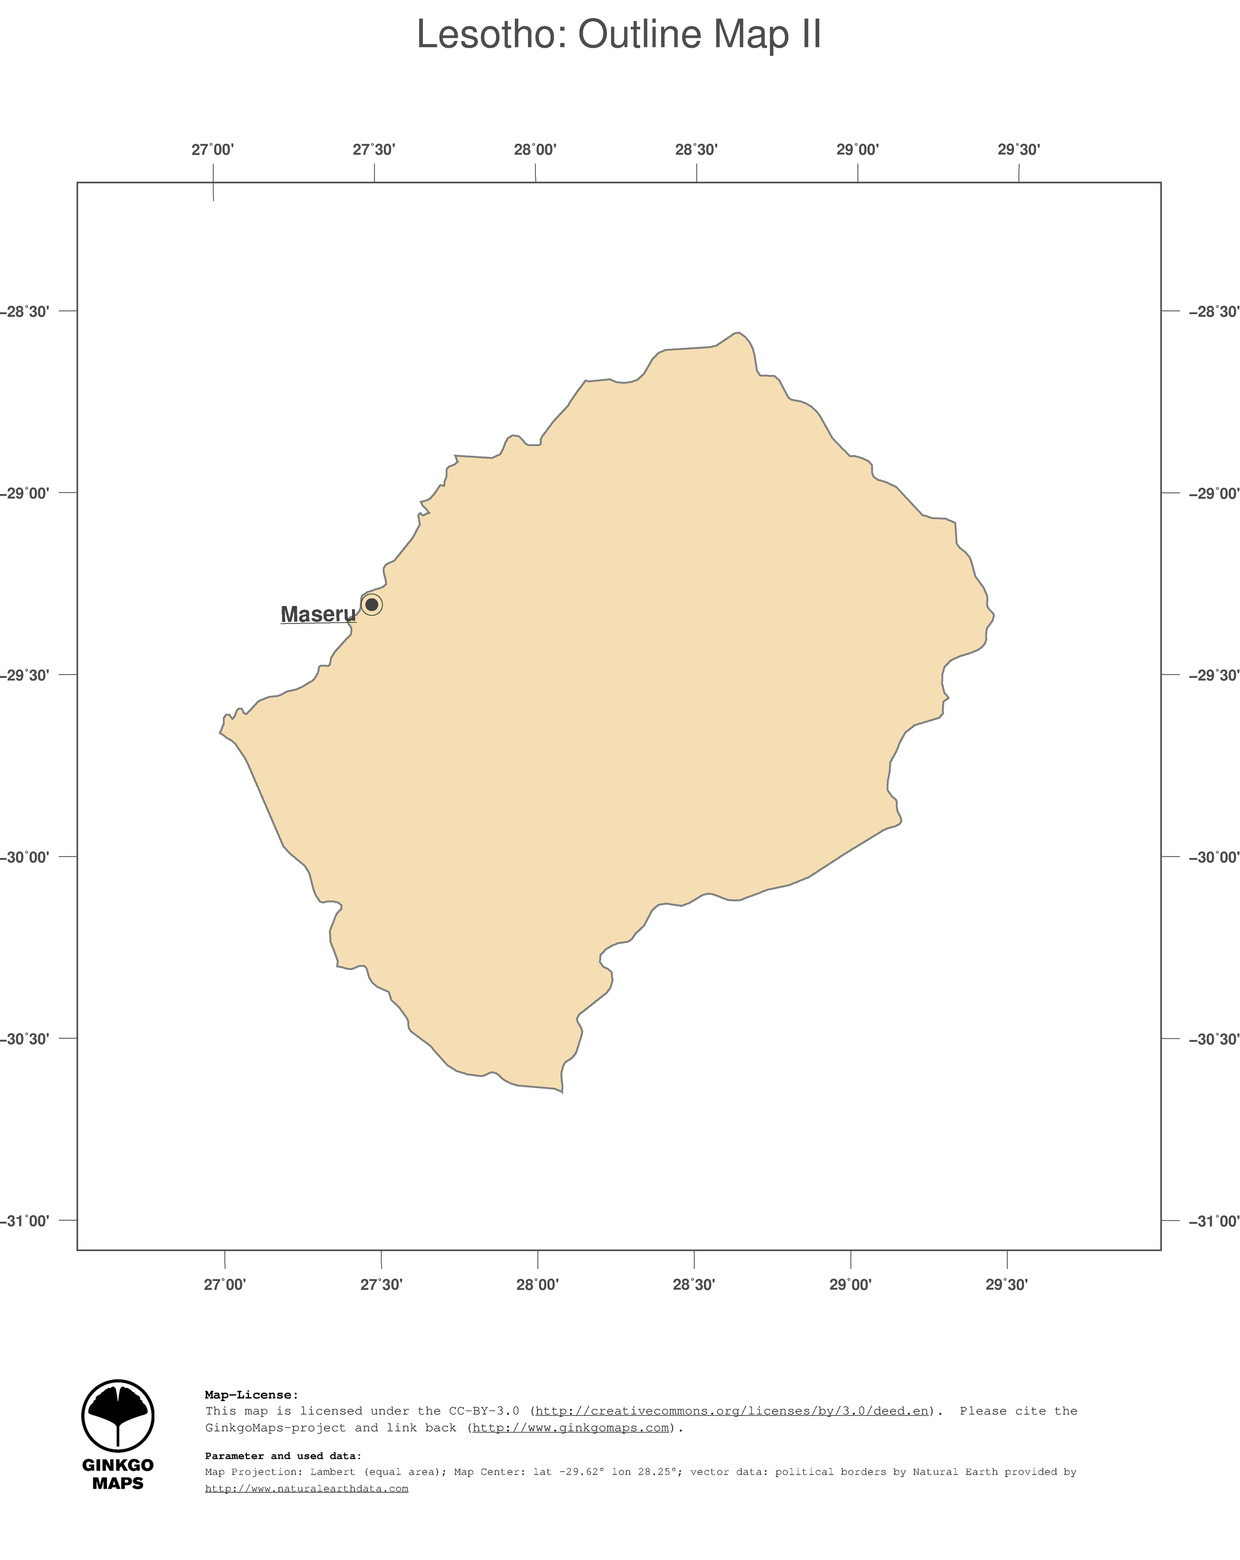 Map Lesotho GinkgoMaps Continent Africa Region Lesotho - Lesotho political map